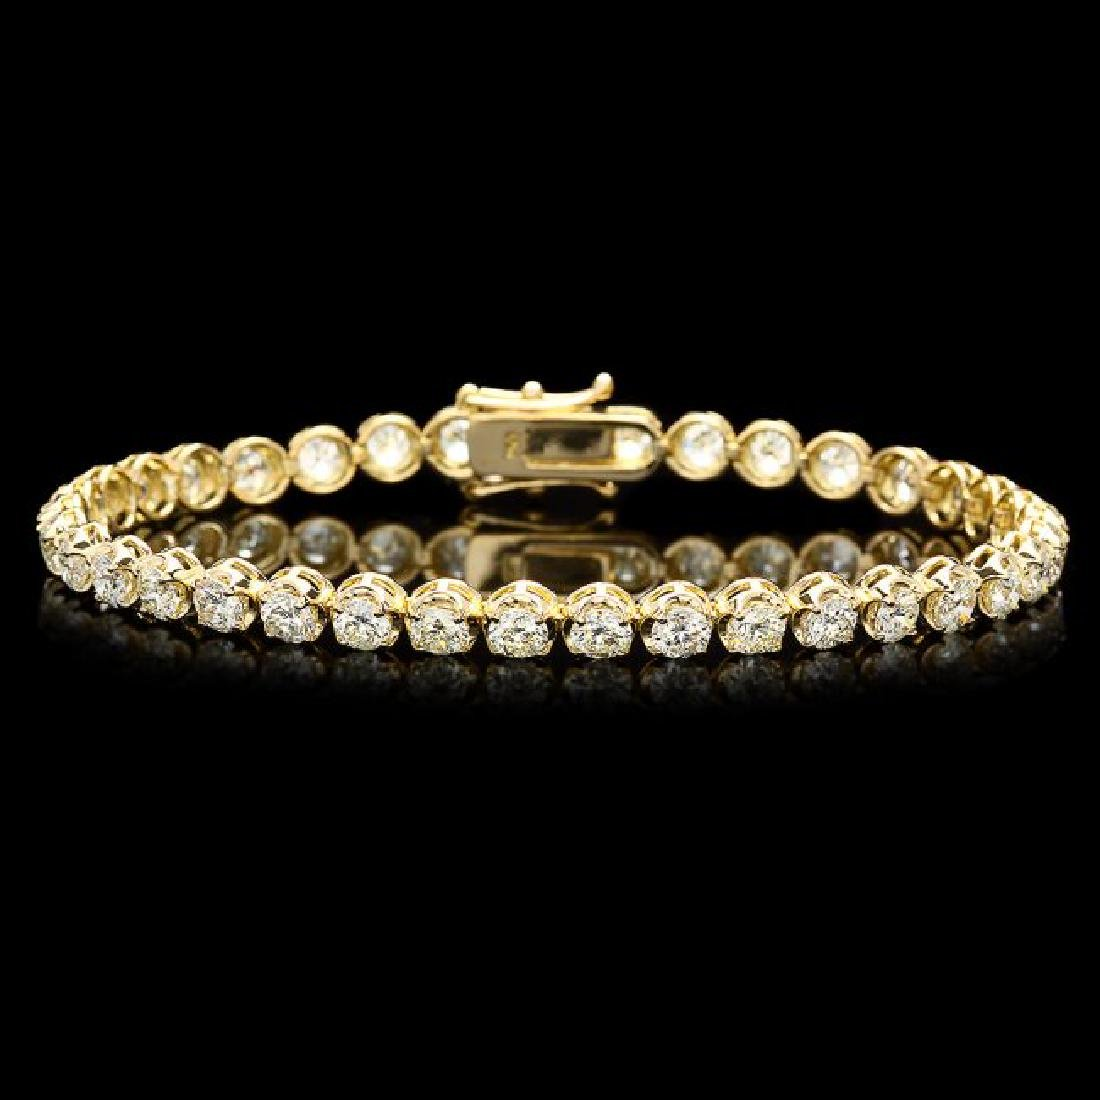 18k Yellow Gold 7.60ct Diamond Bracelet